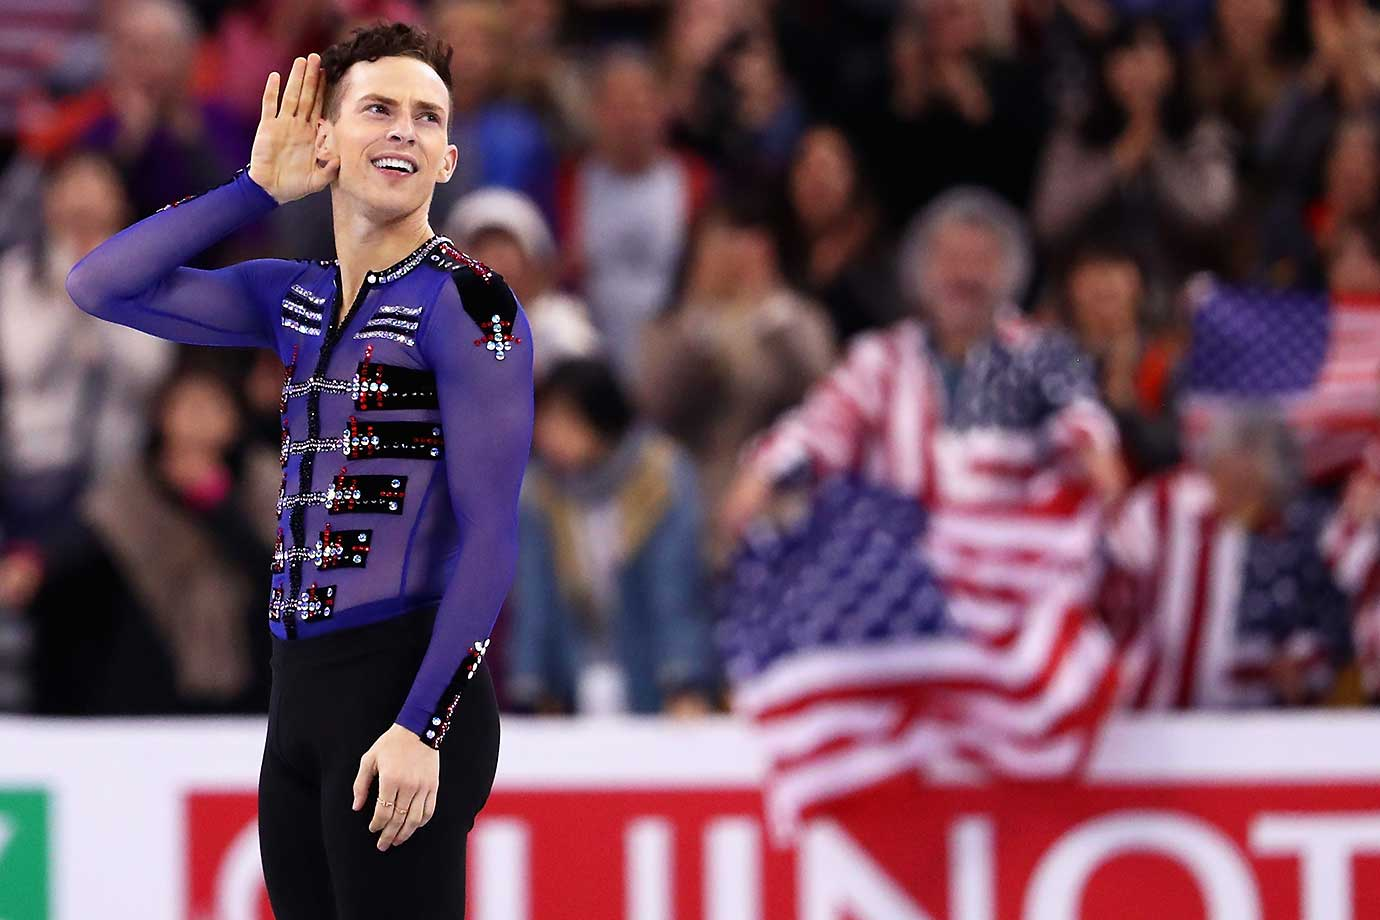 Adam Rippon of the United States celebrates after completing his routine in the Free Skate program at the World Figure Skating Championships.